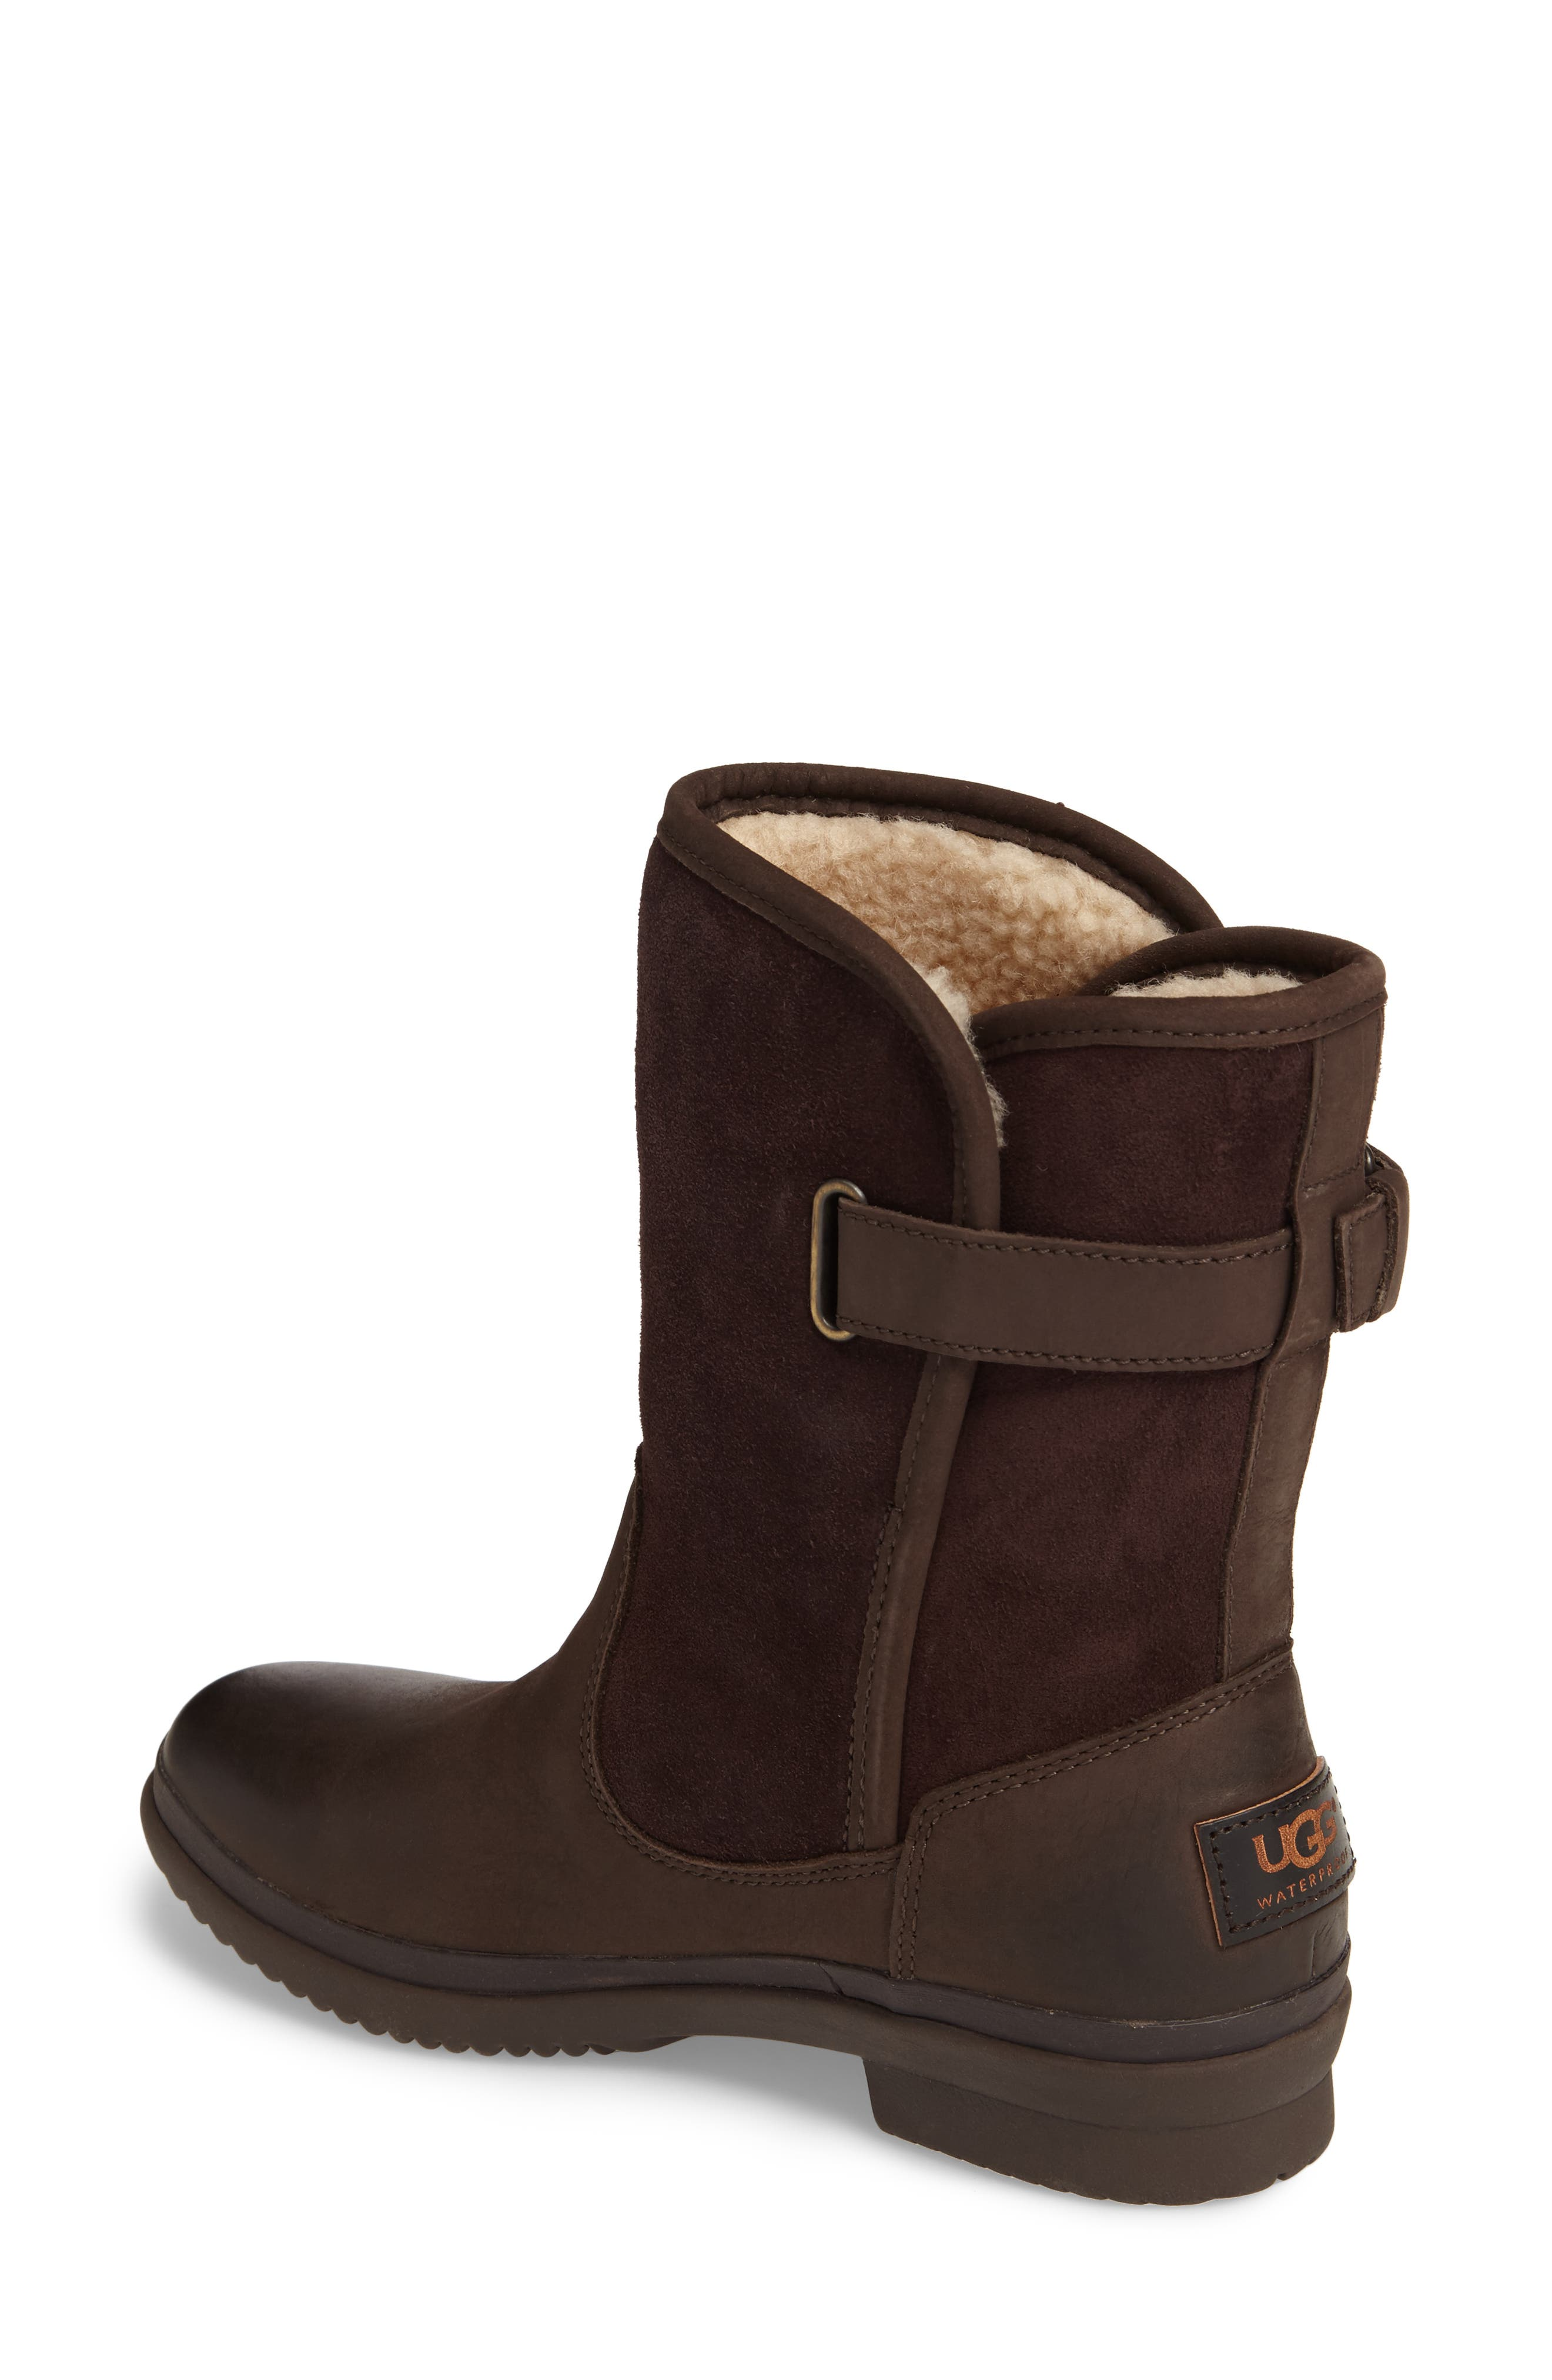 Oren Waterproof Boot,                             Alternate thumbnail 2, color,                             Stout Leather